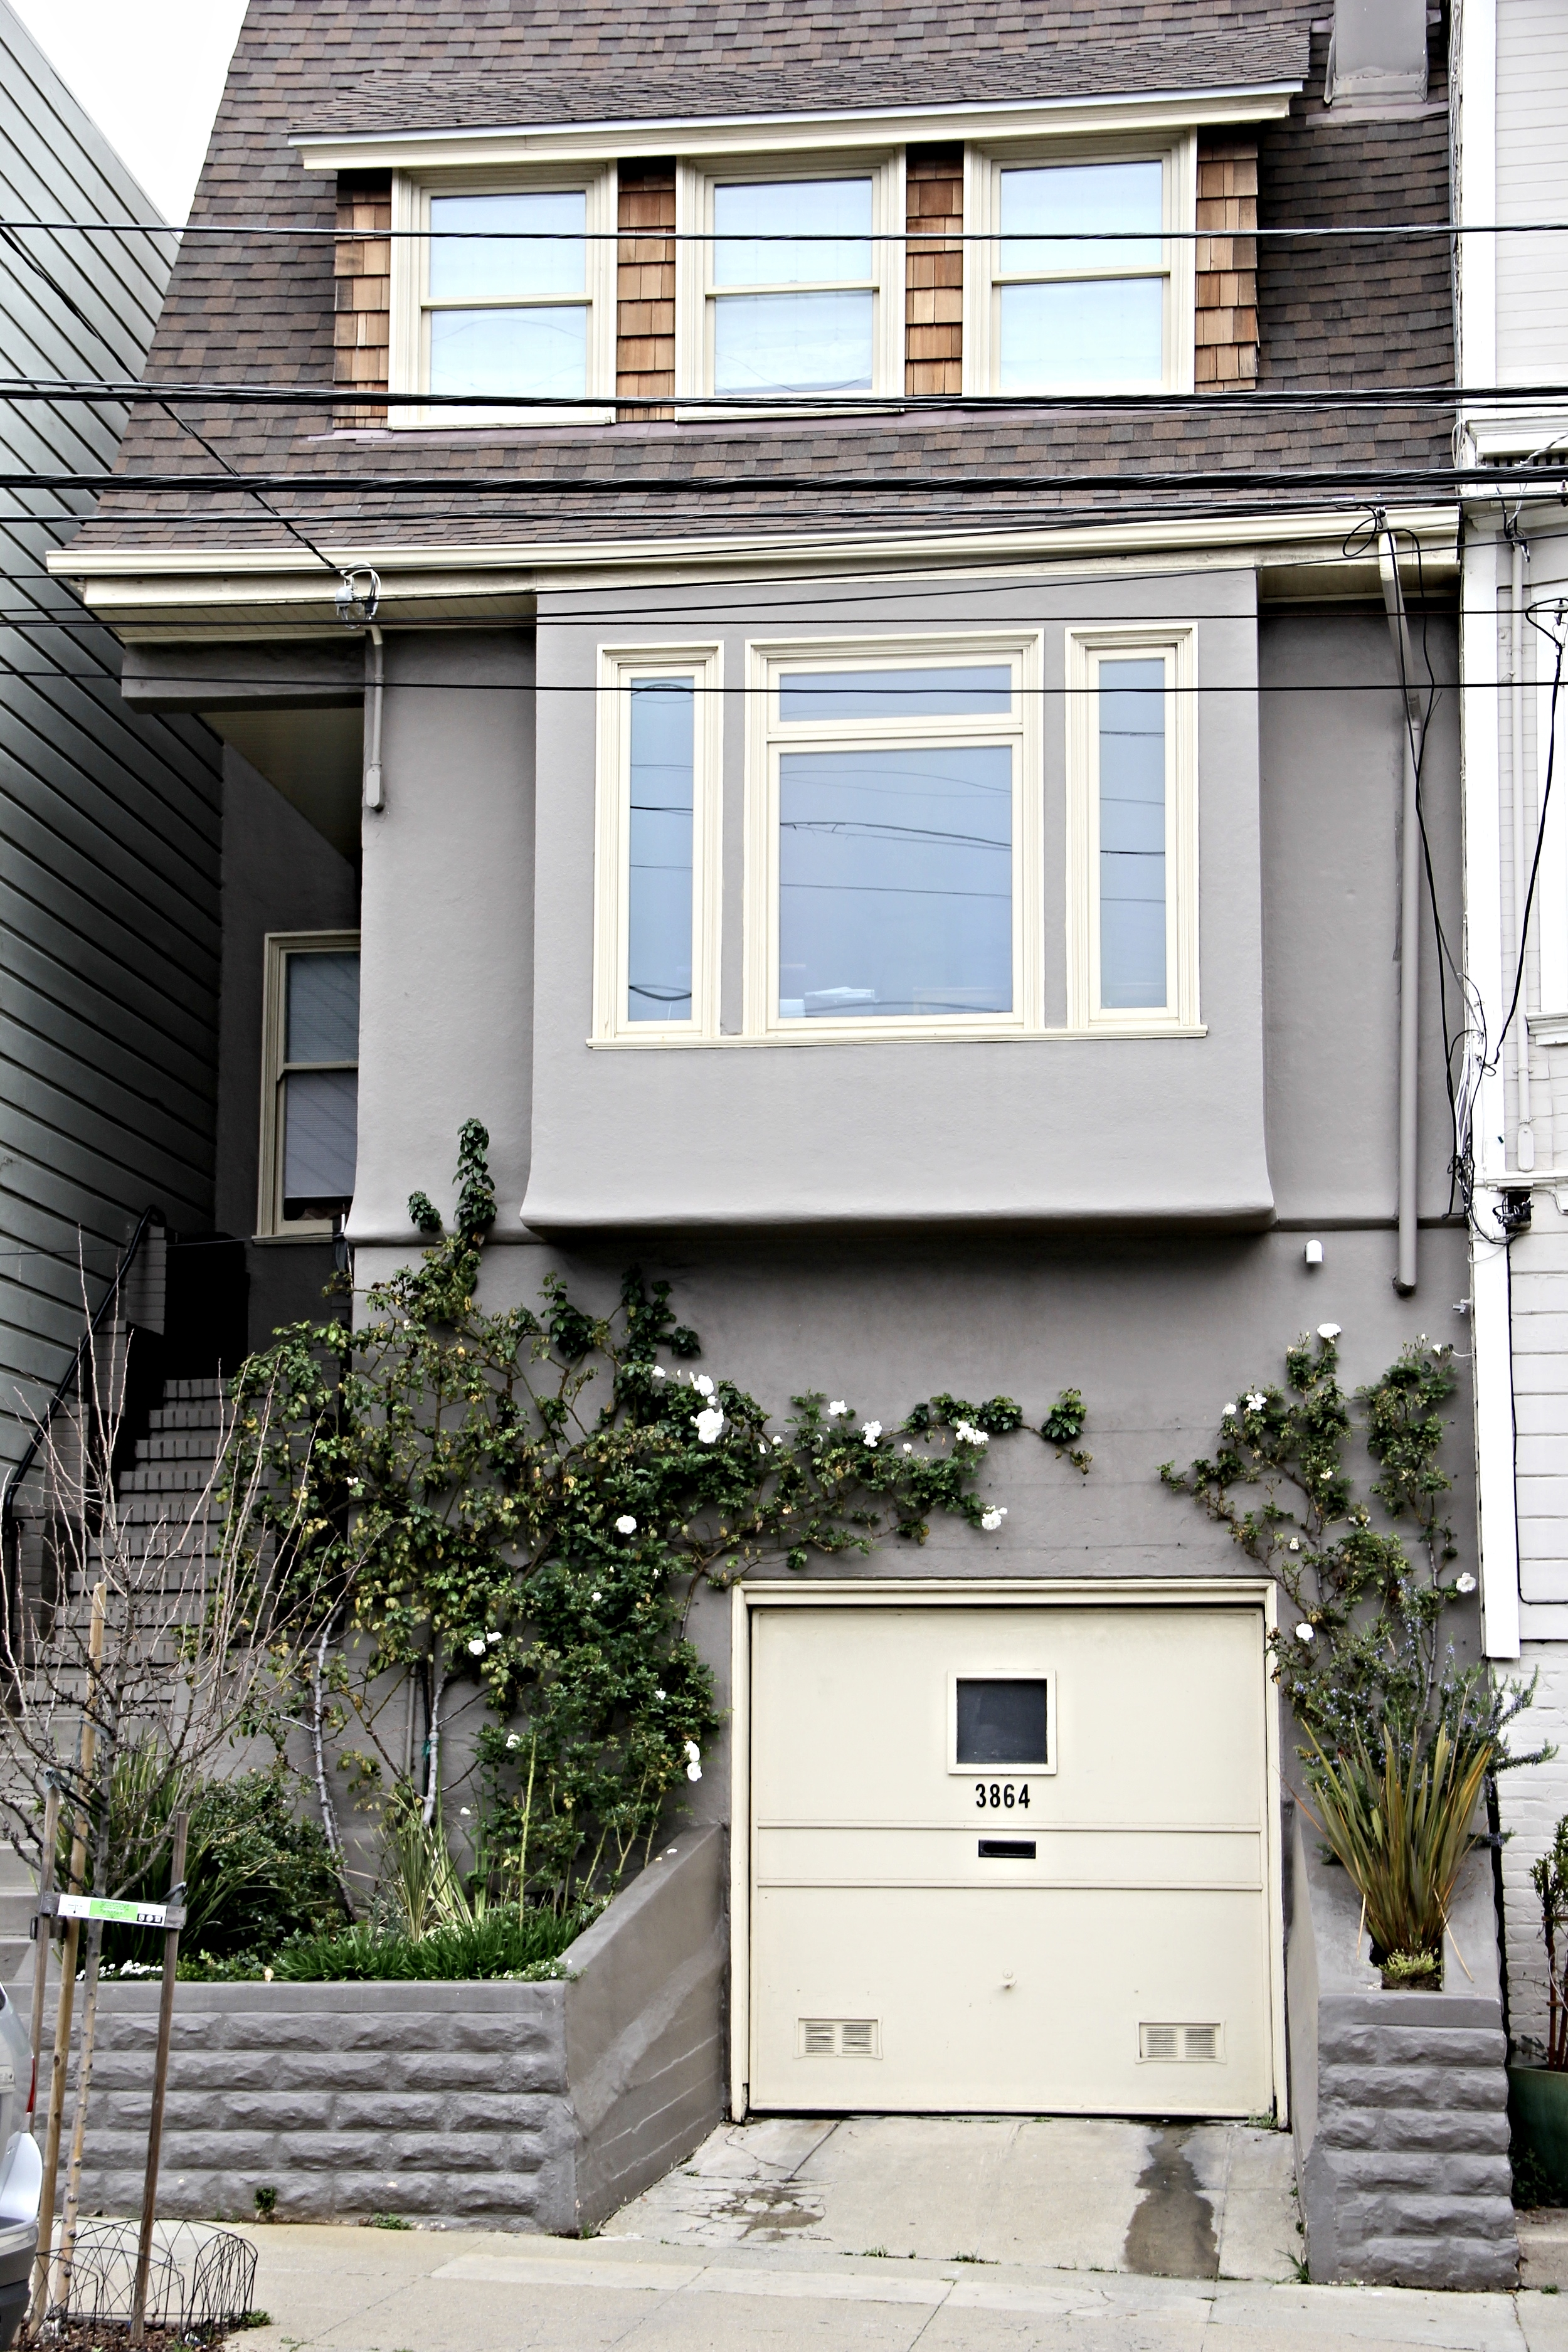 Noe Valley home | Beyond Ordinary Guides